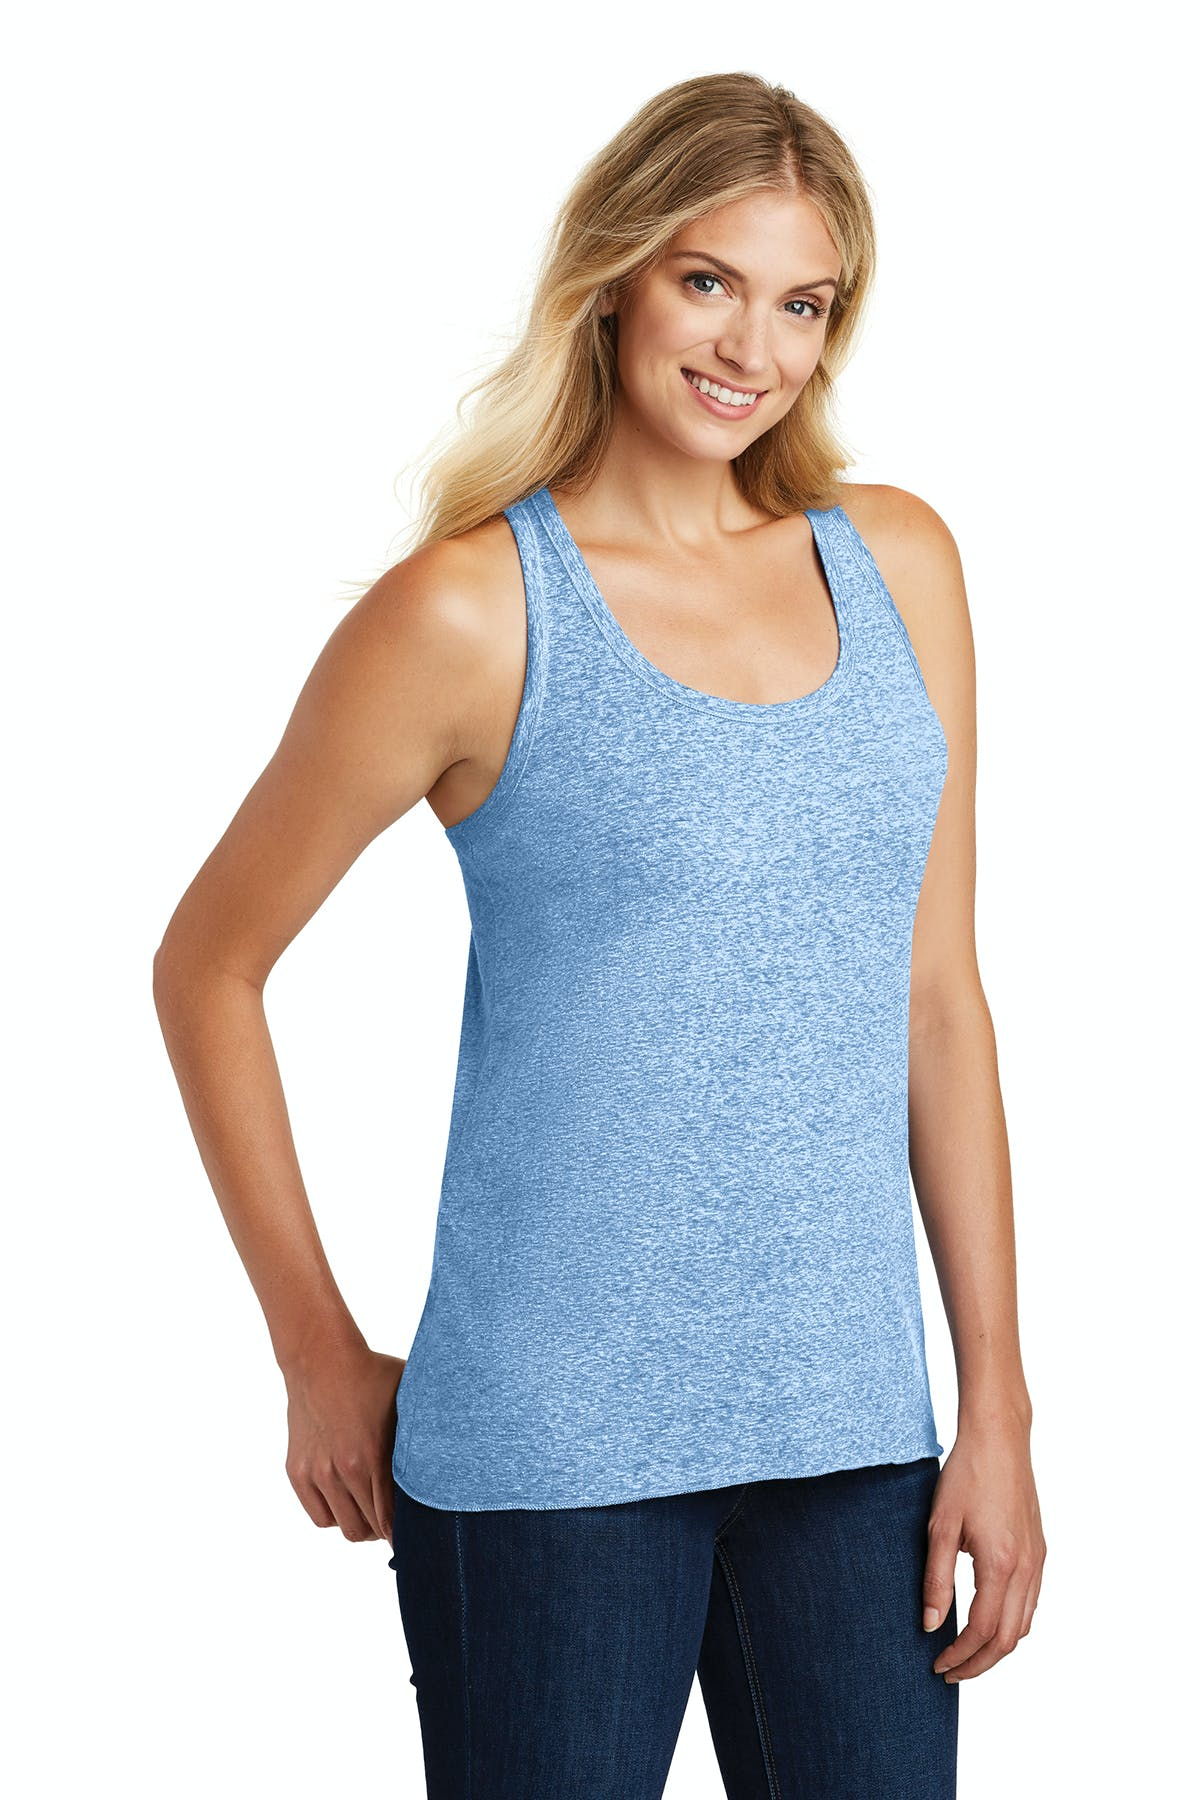 District Made® Ladies Cosmic Twist Back Tank - sold by PRINT CITY GRAPHICS, INC